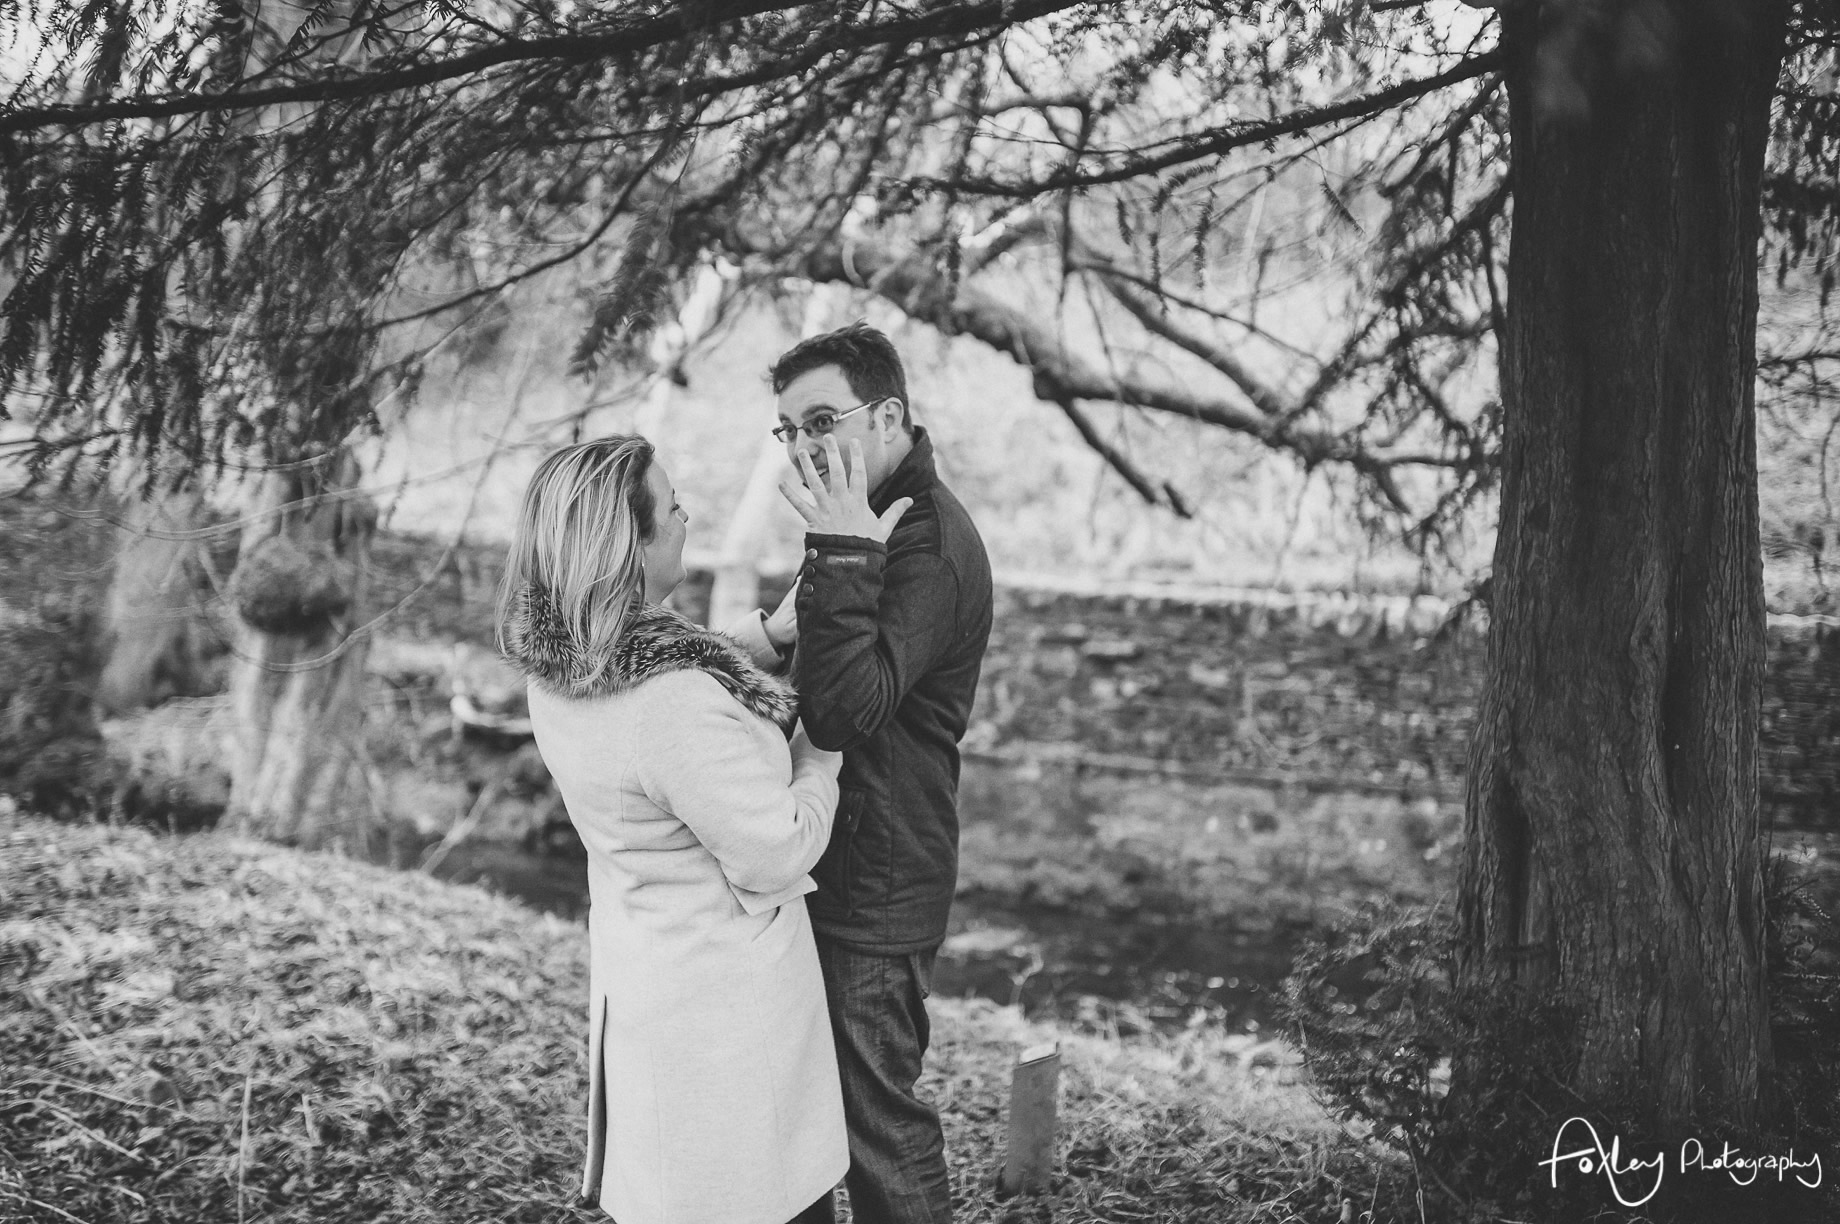 Rebecca and Paul's Pre-Wedding Shoot at Wycoller Country Park 022